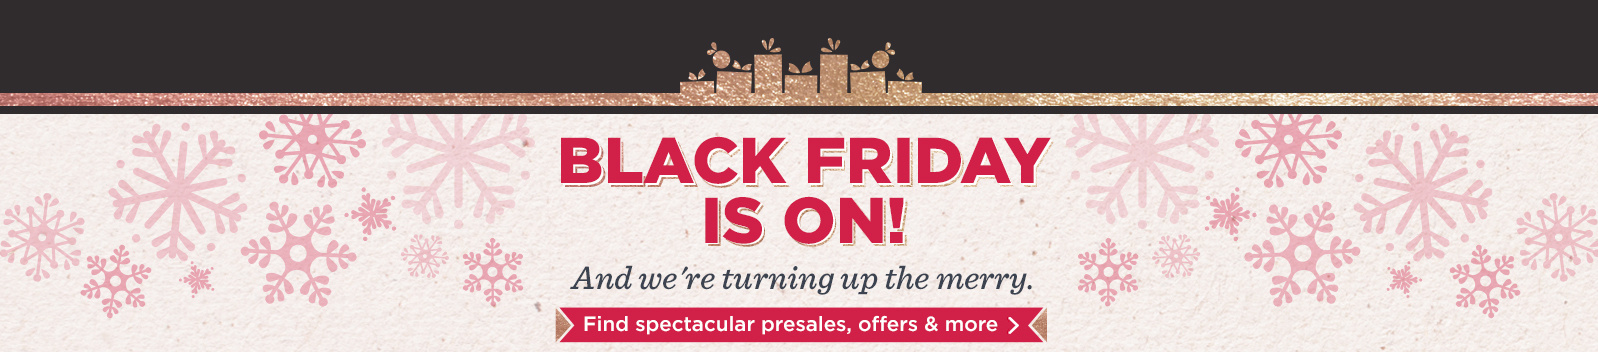 Black Friday Is On! And we're turning up the merry. Find spectacular presales, offers & more